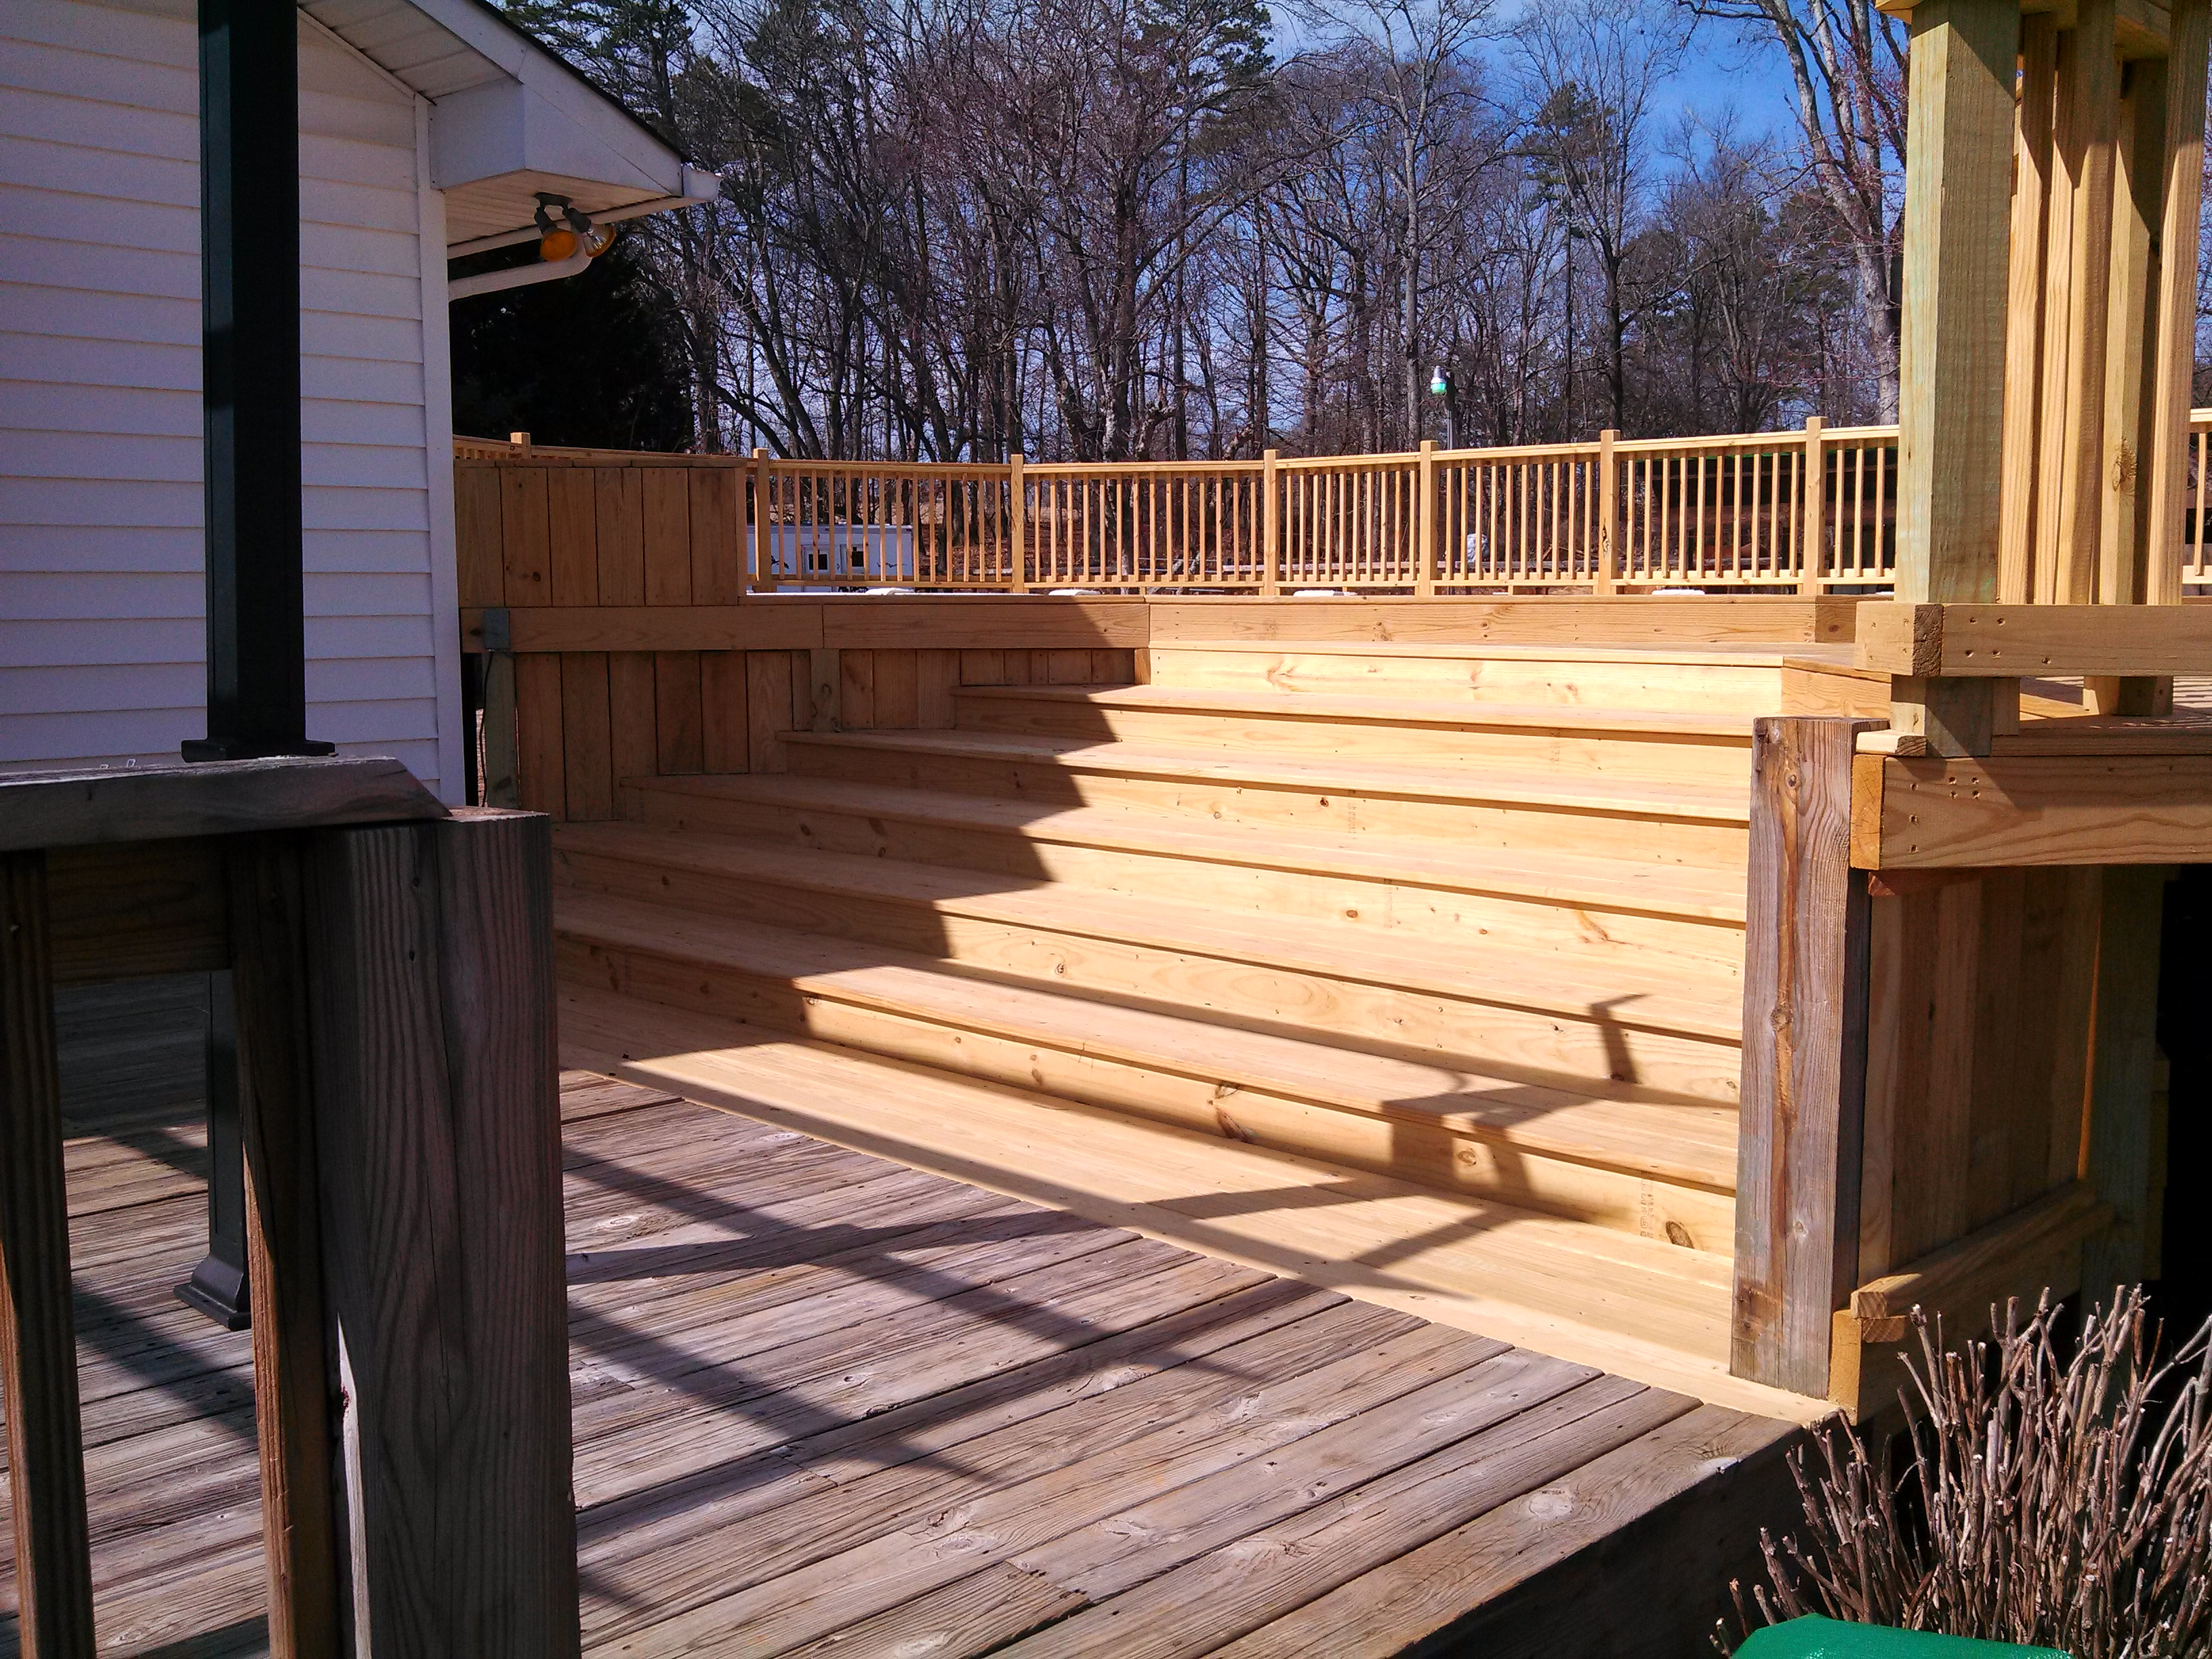 another view of the decks steps